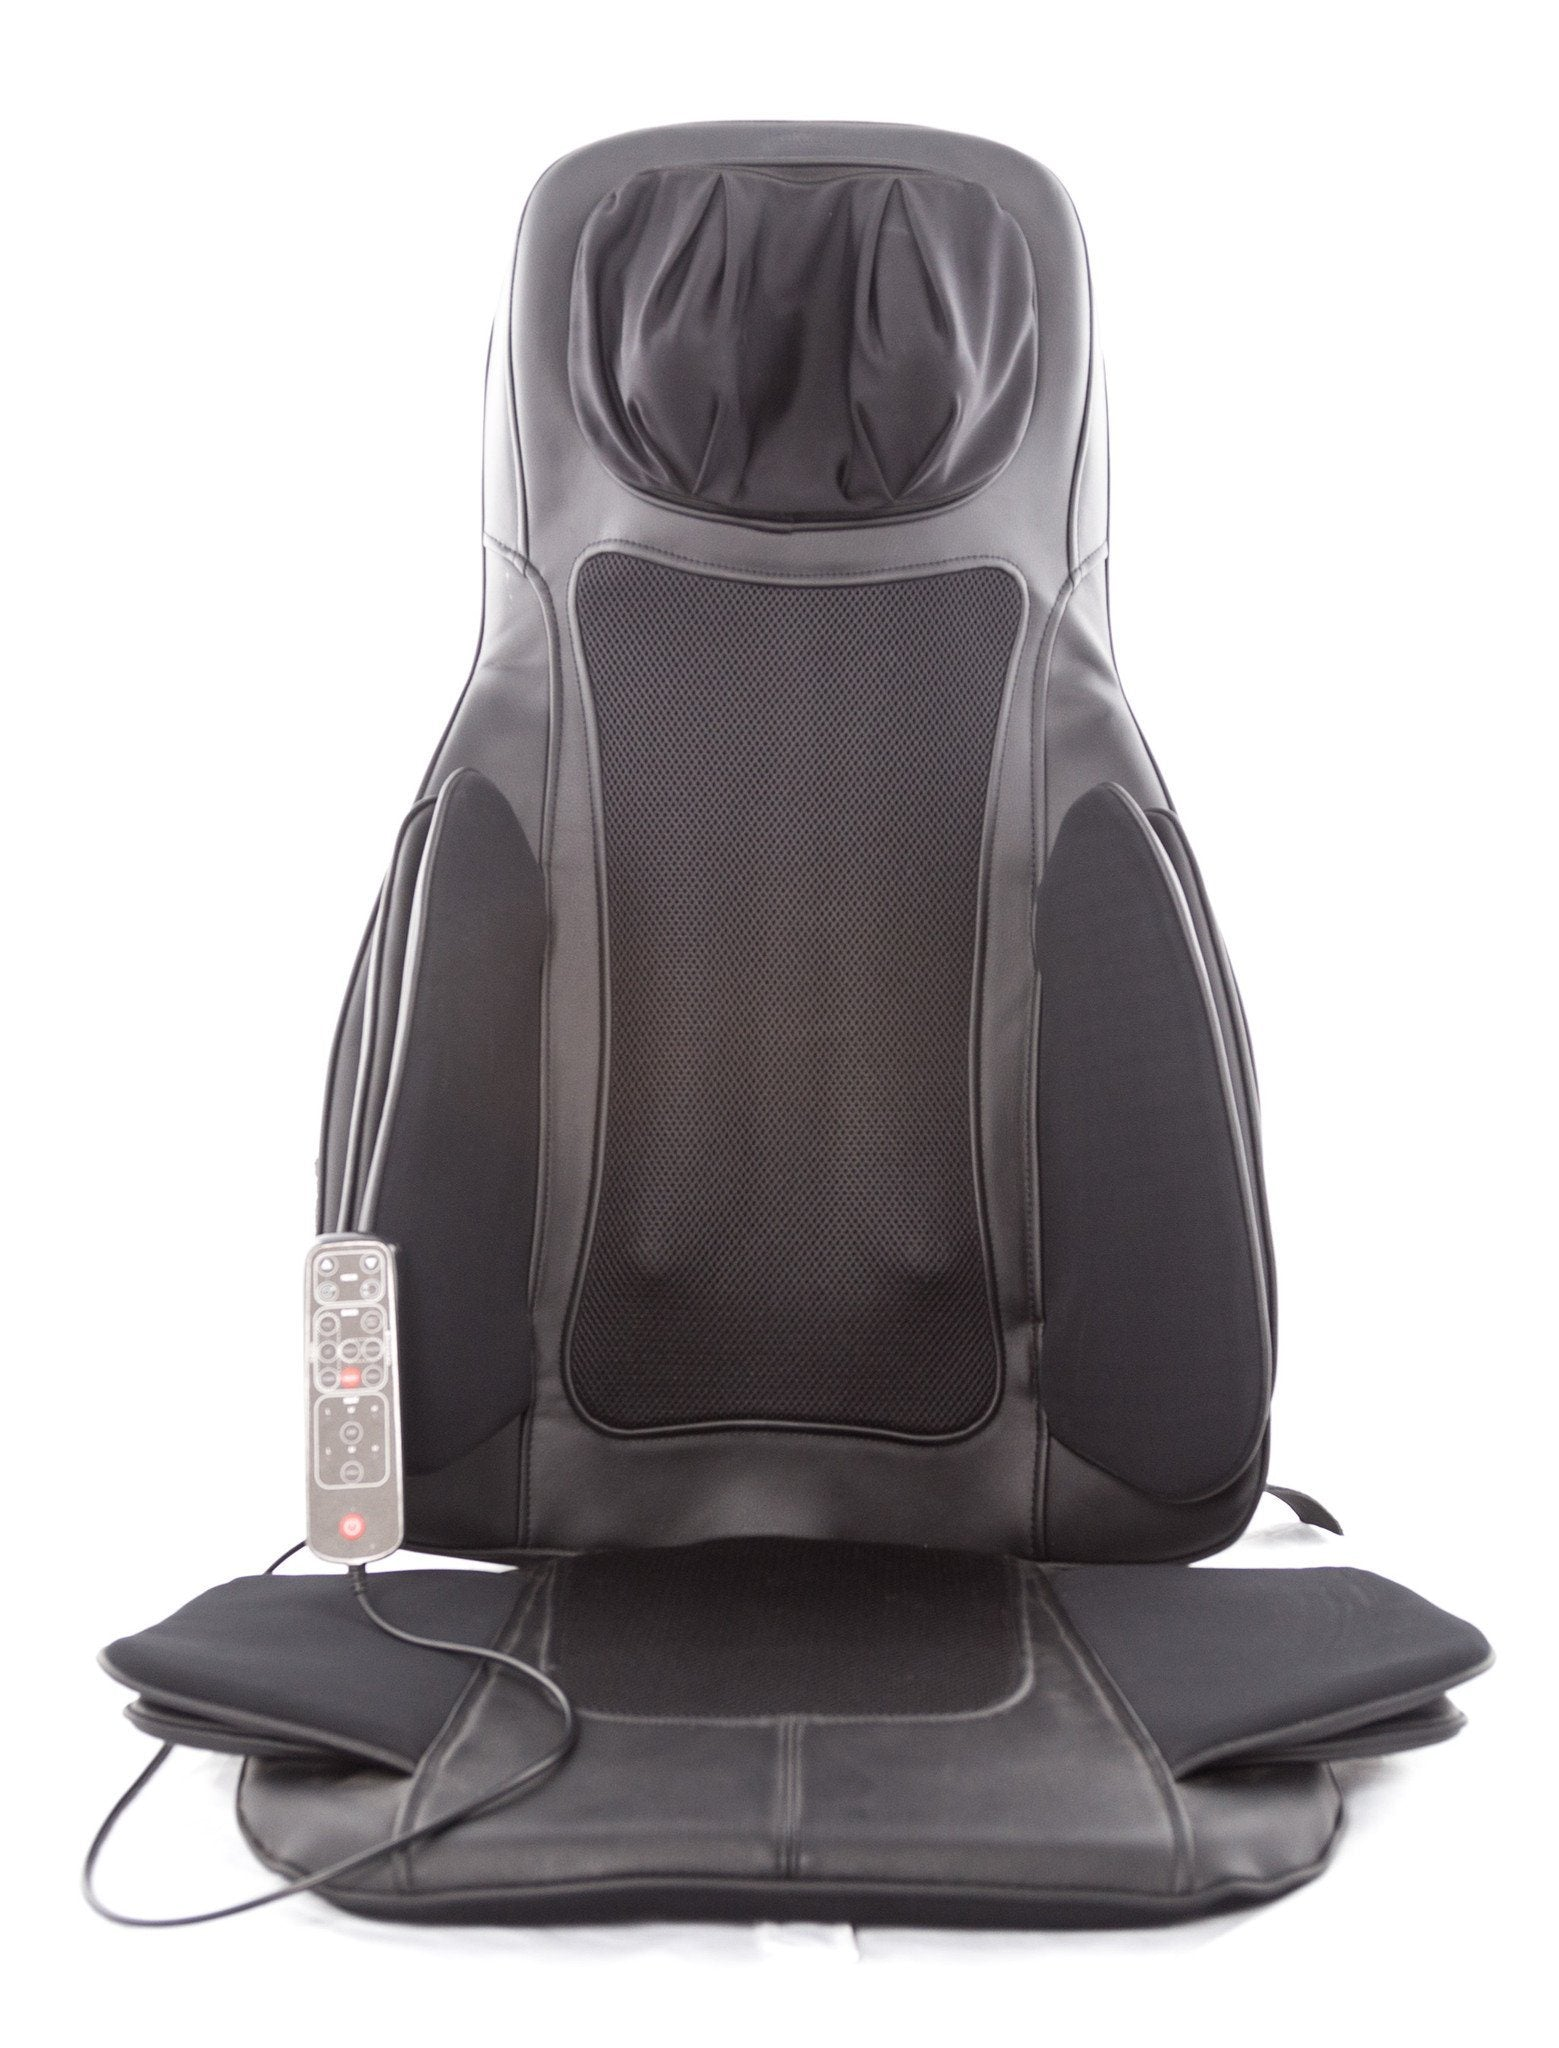 InstaShiatsu Seat Cushion Massager with Air pression – truMedic